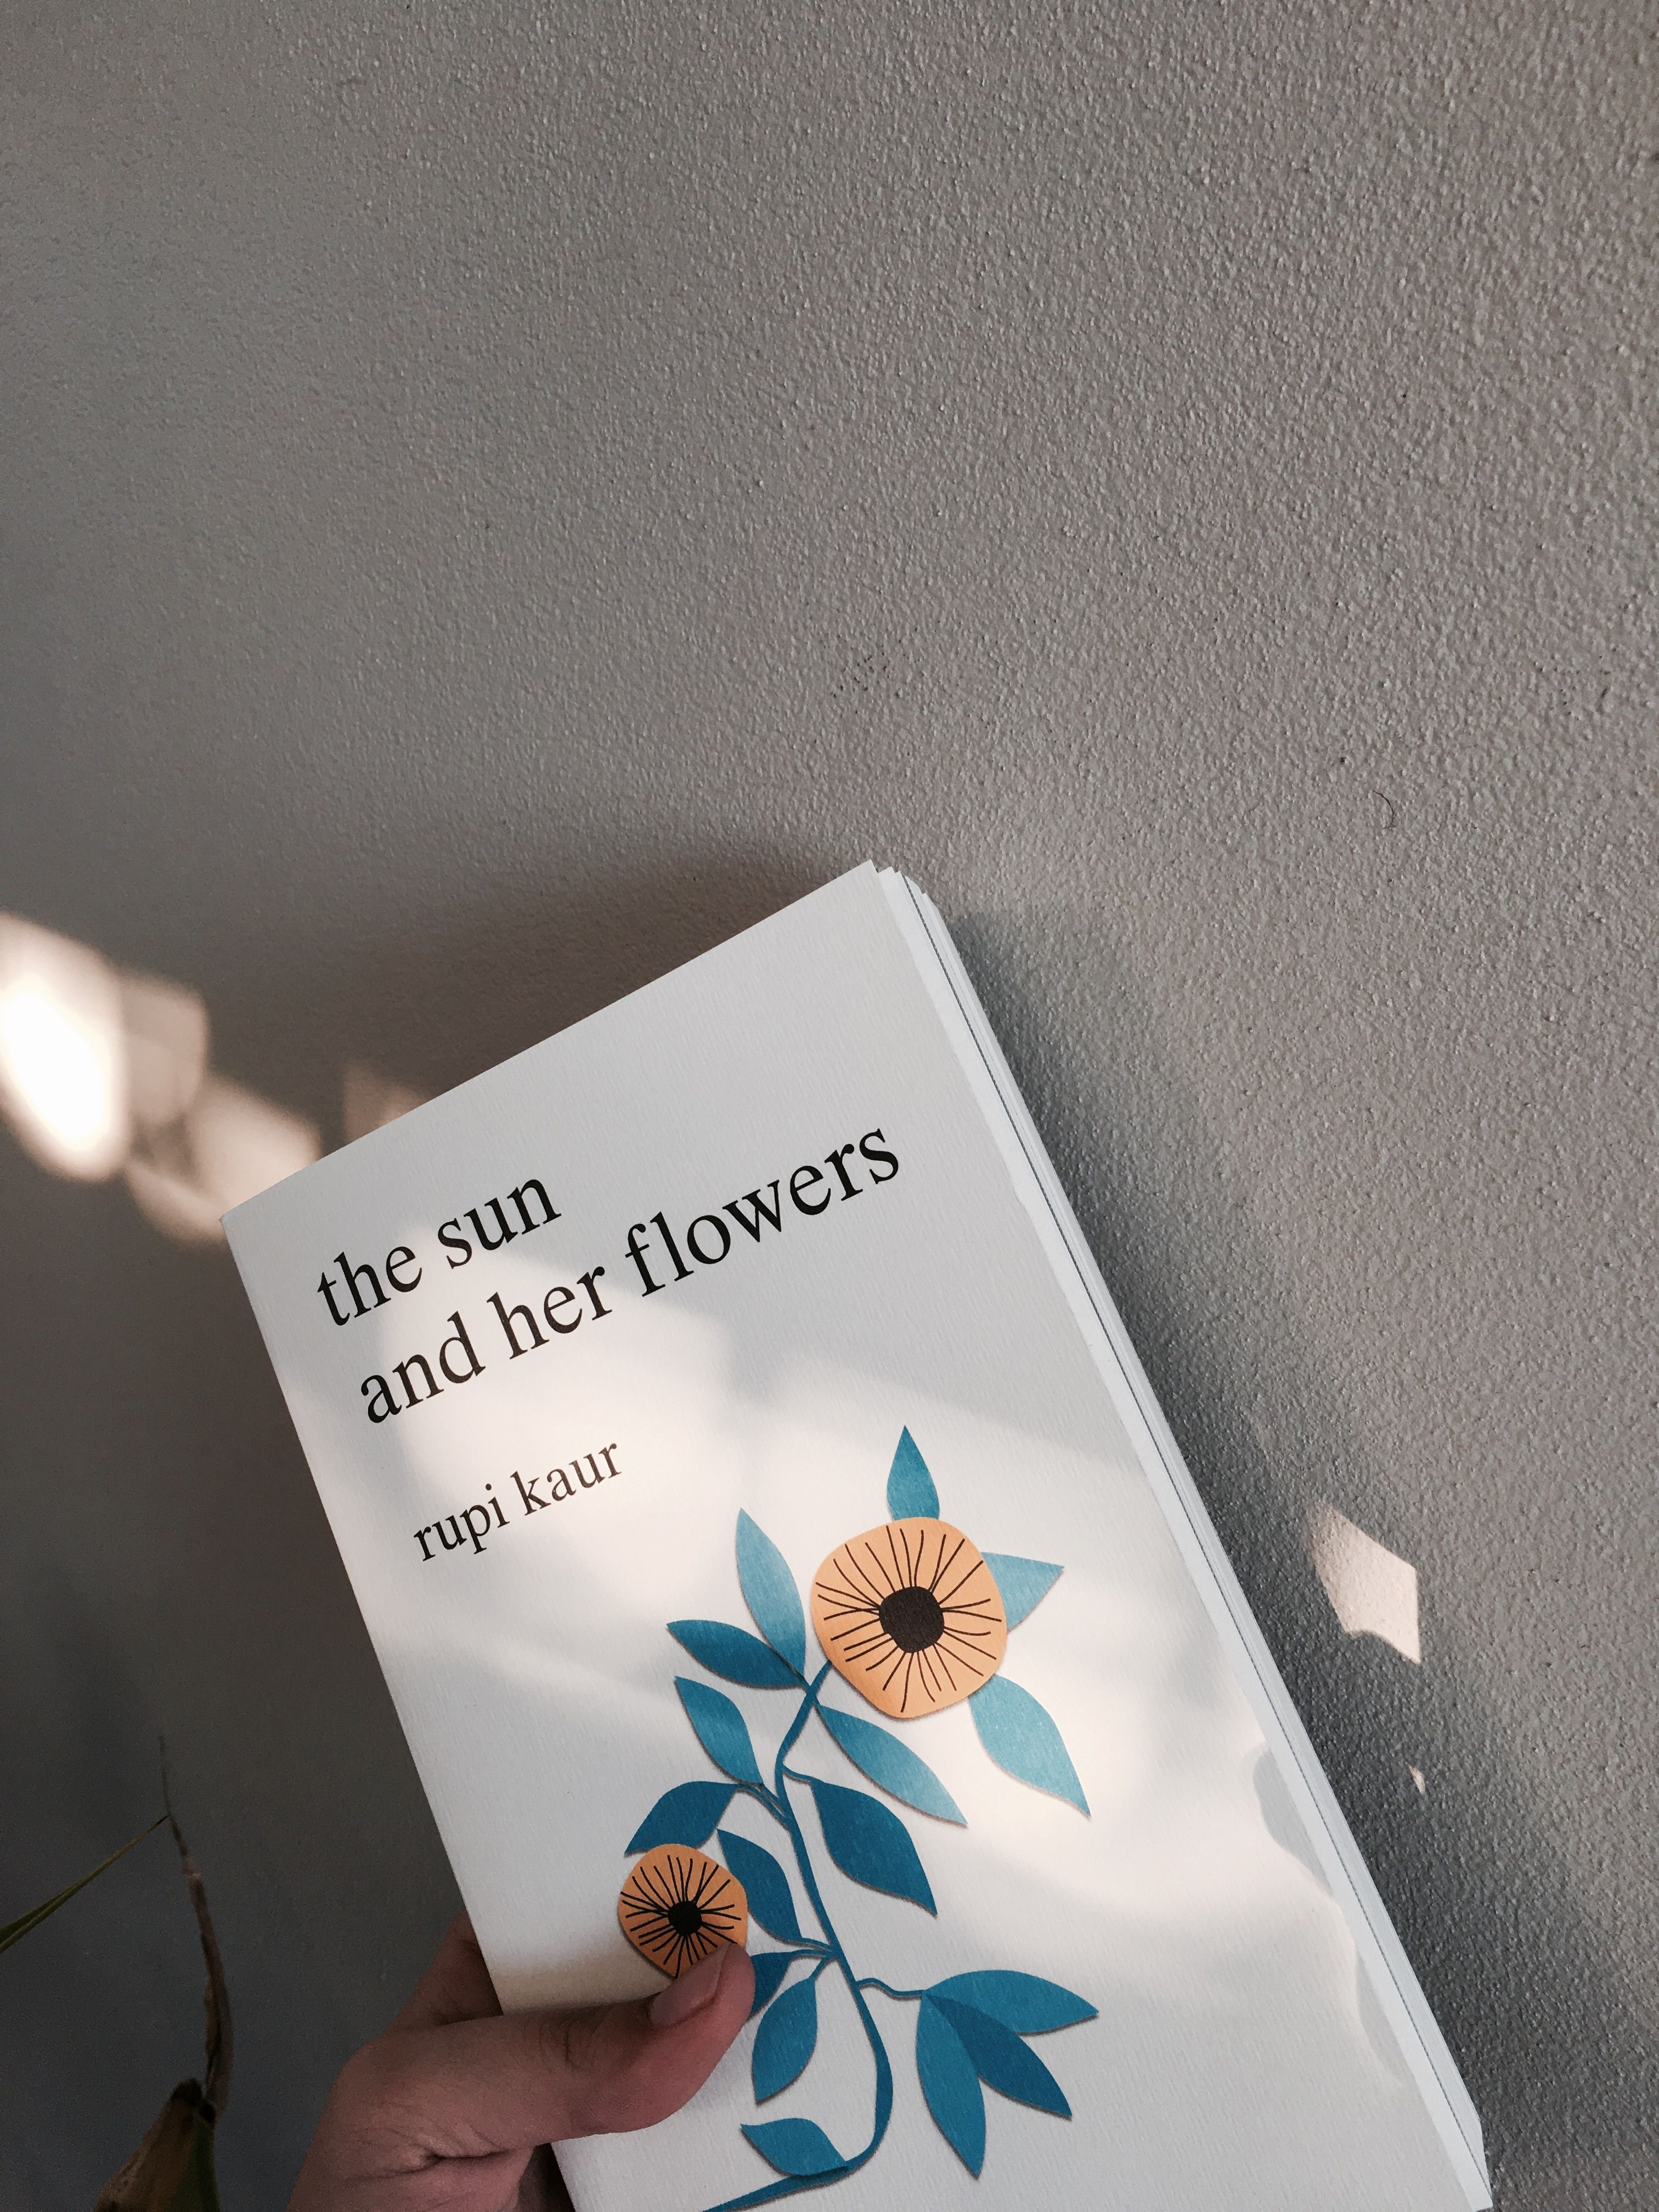 The Sun And Her Flowers By Rupi Kaur Books Poetry Quotes Pinterest Parisdalyy Books Poetry Books Book Club Books